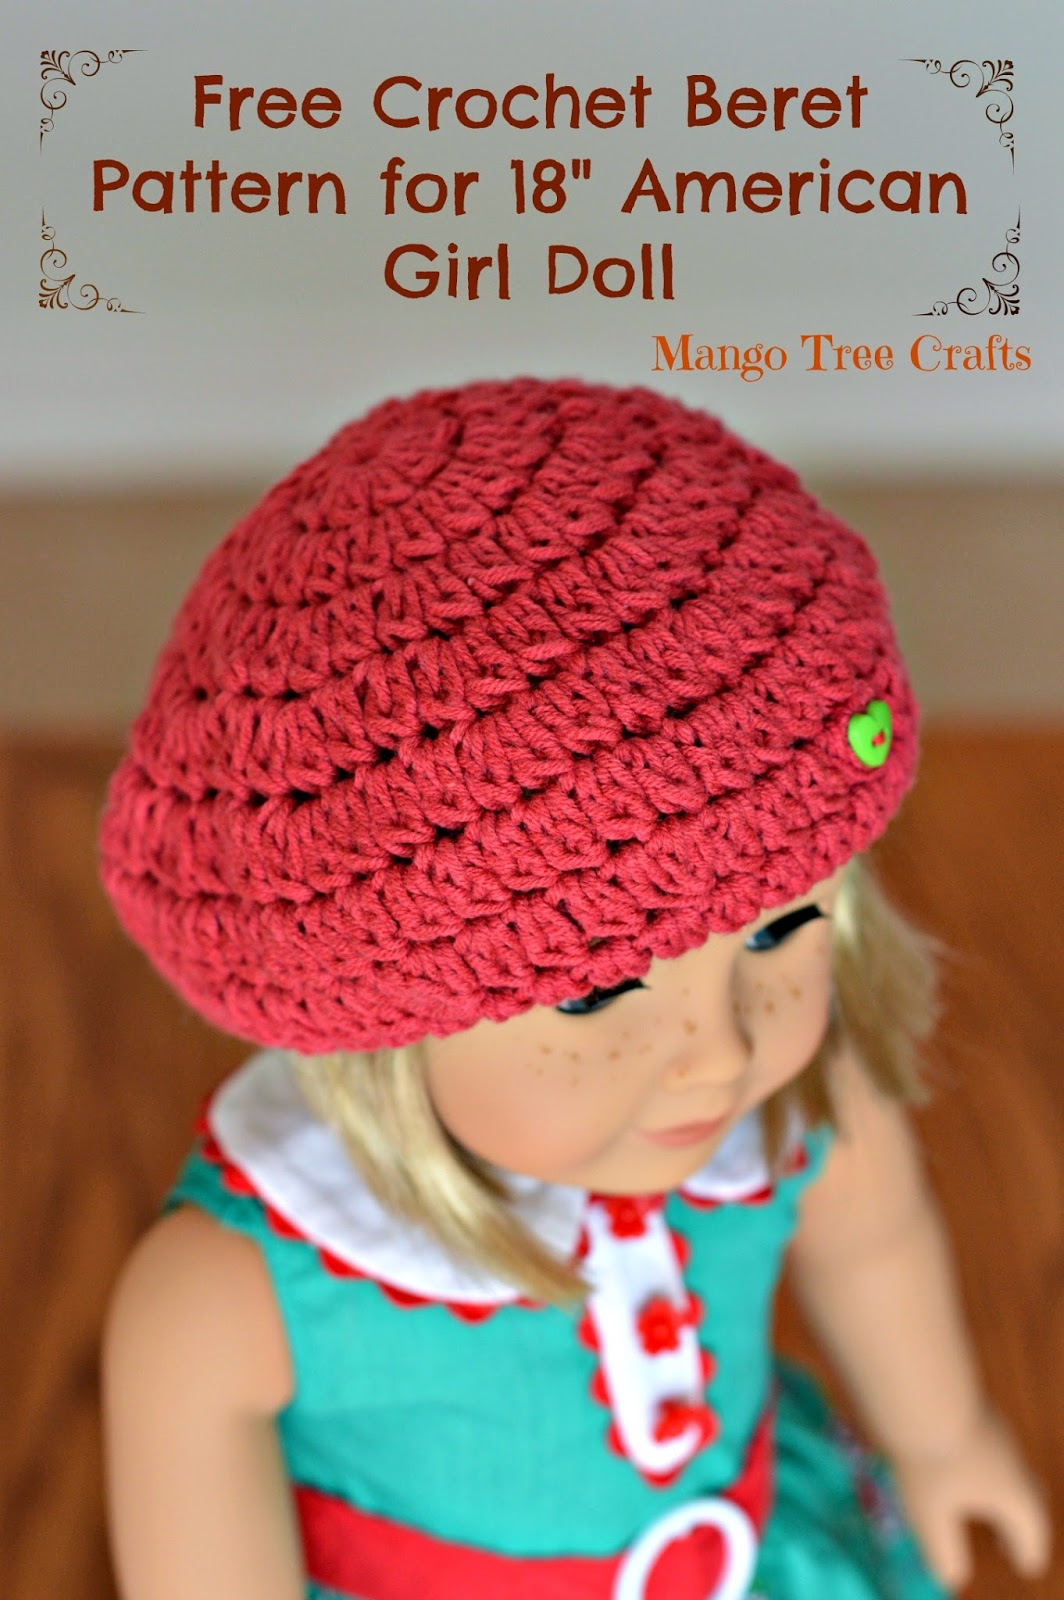 Crochet Beret for doll